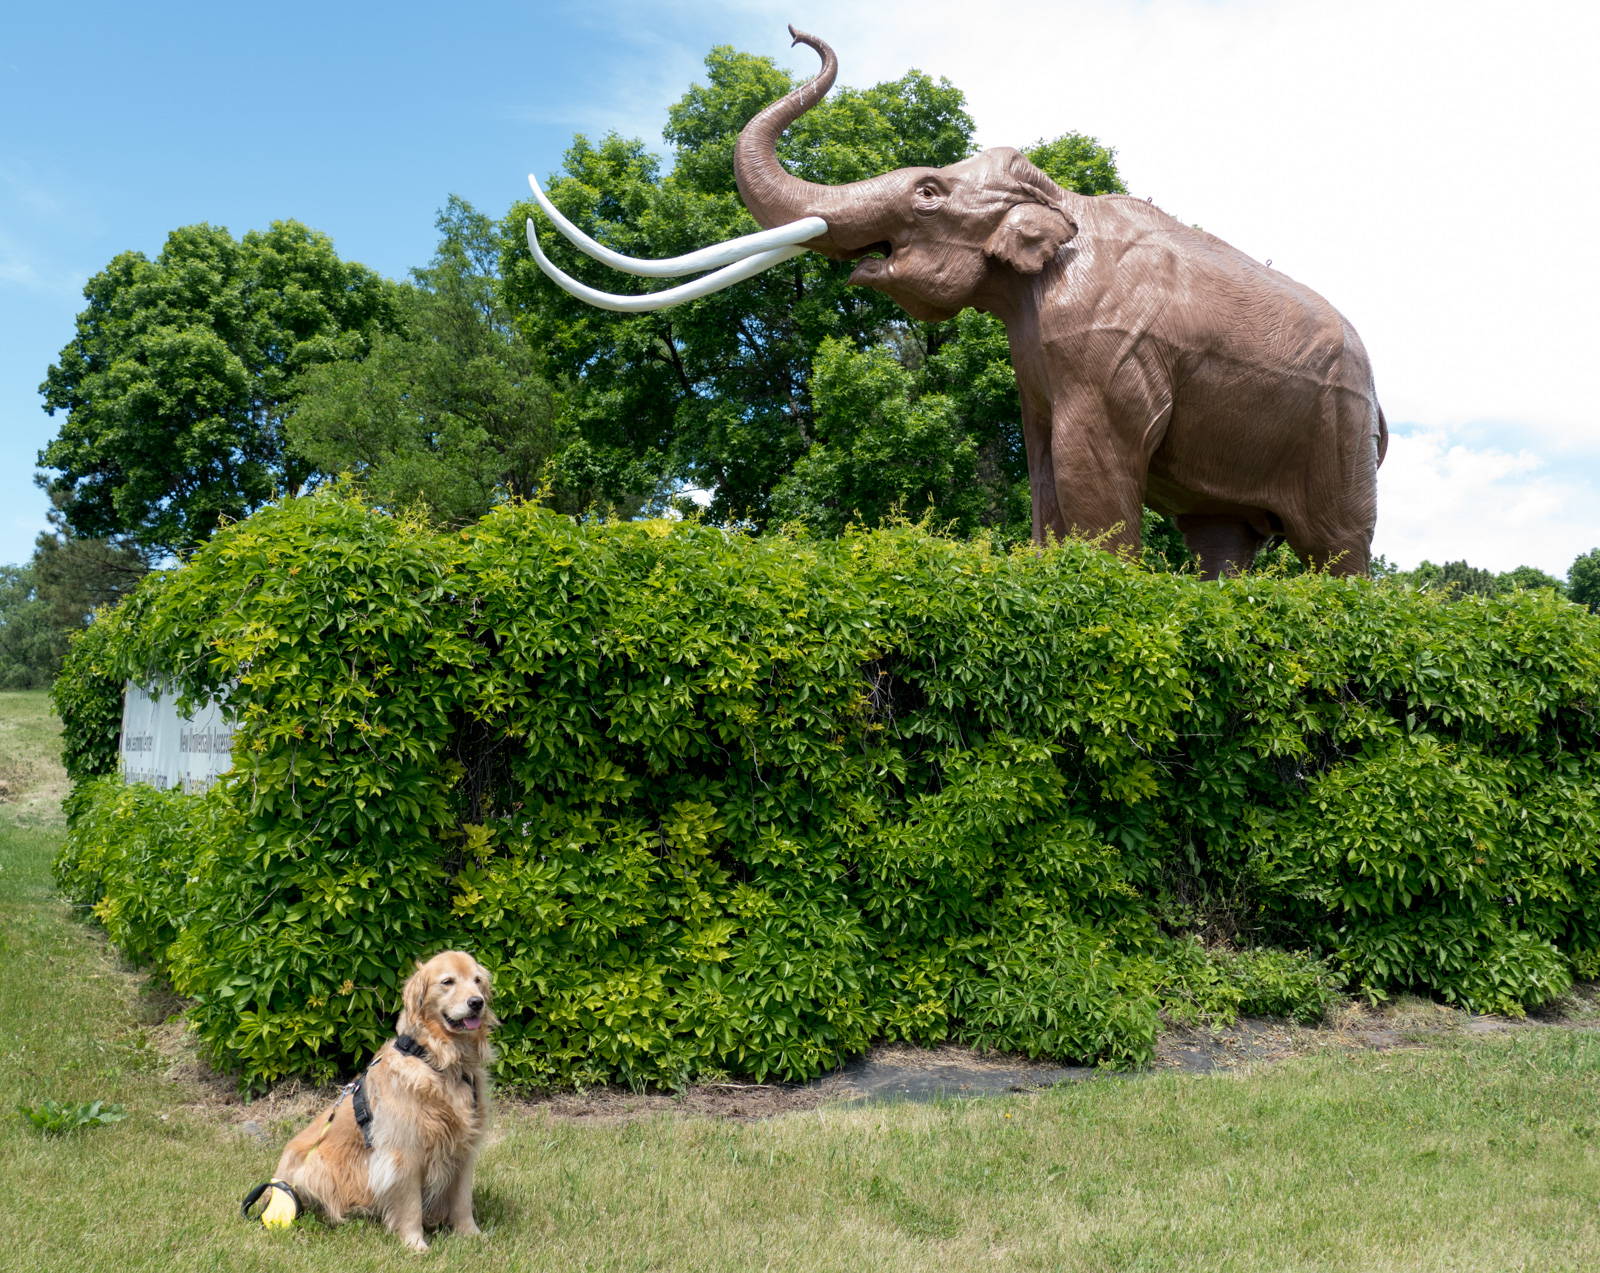 Maple is not impressed with the mammoth.